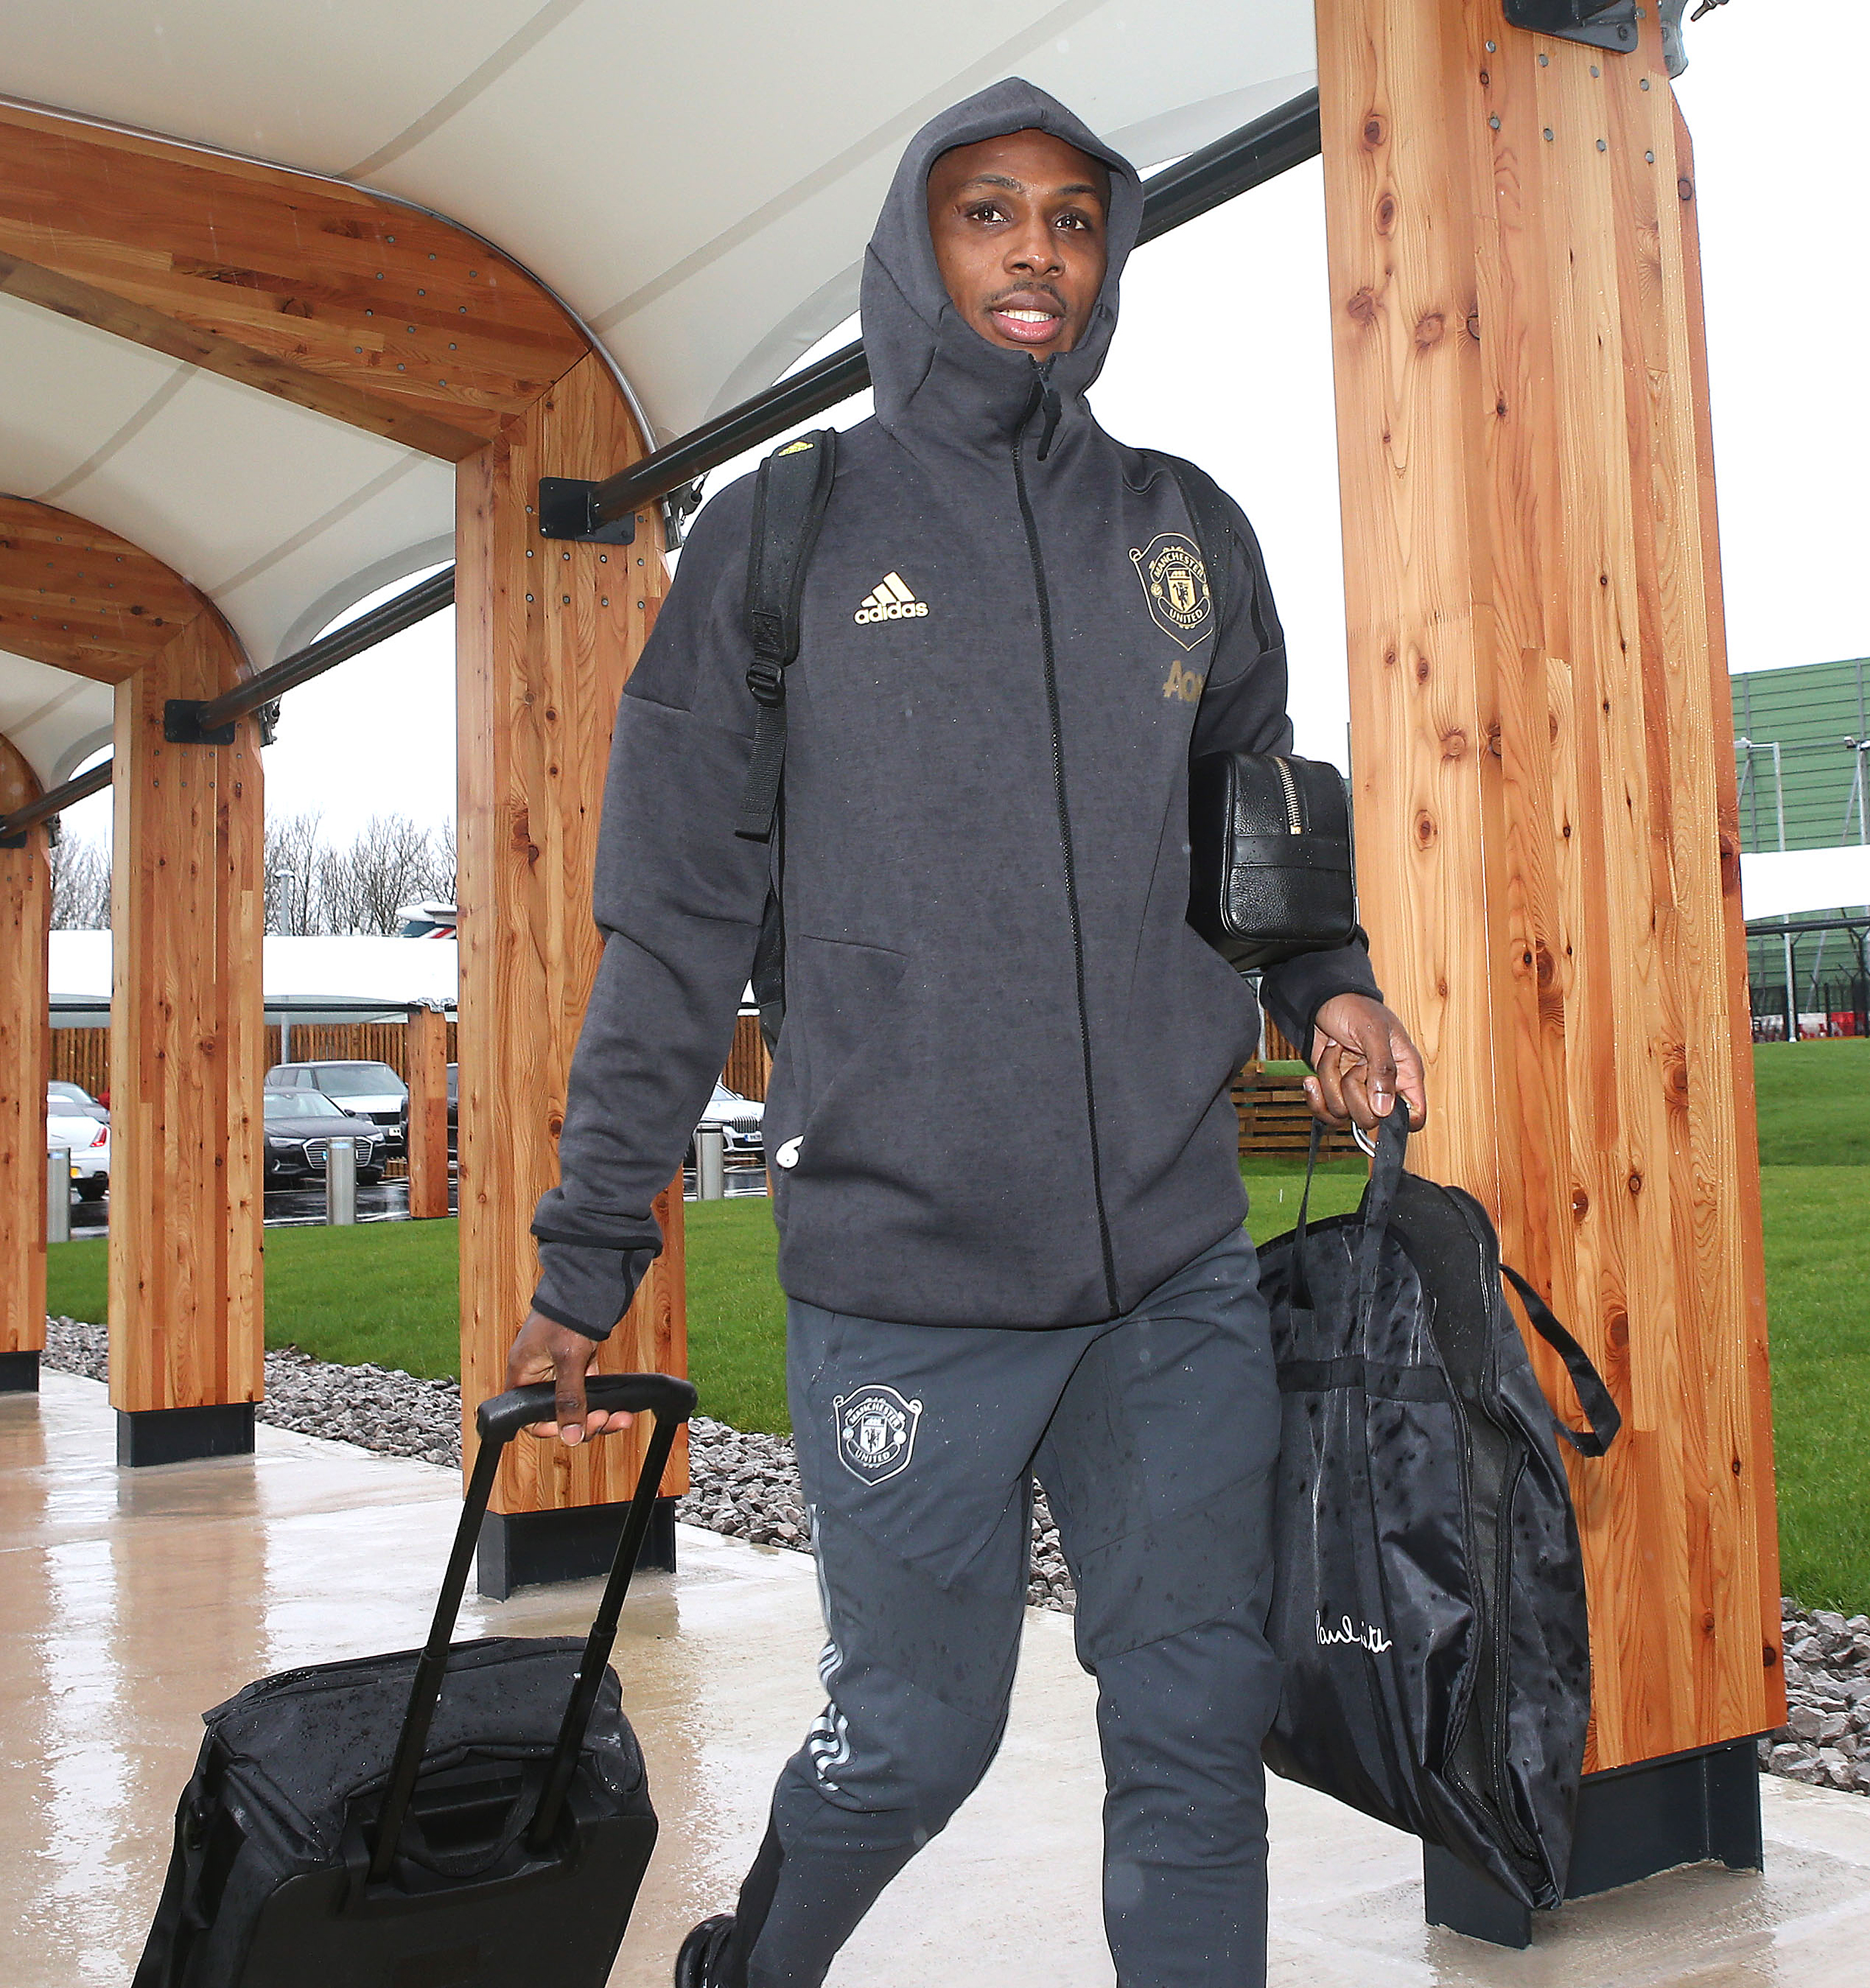 Manchester United Travel to Bruges for Their Europa League Round of 32 First Leg Match